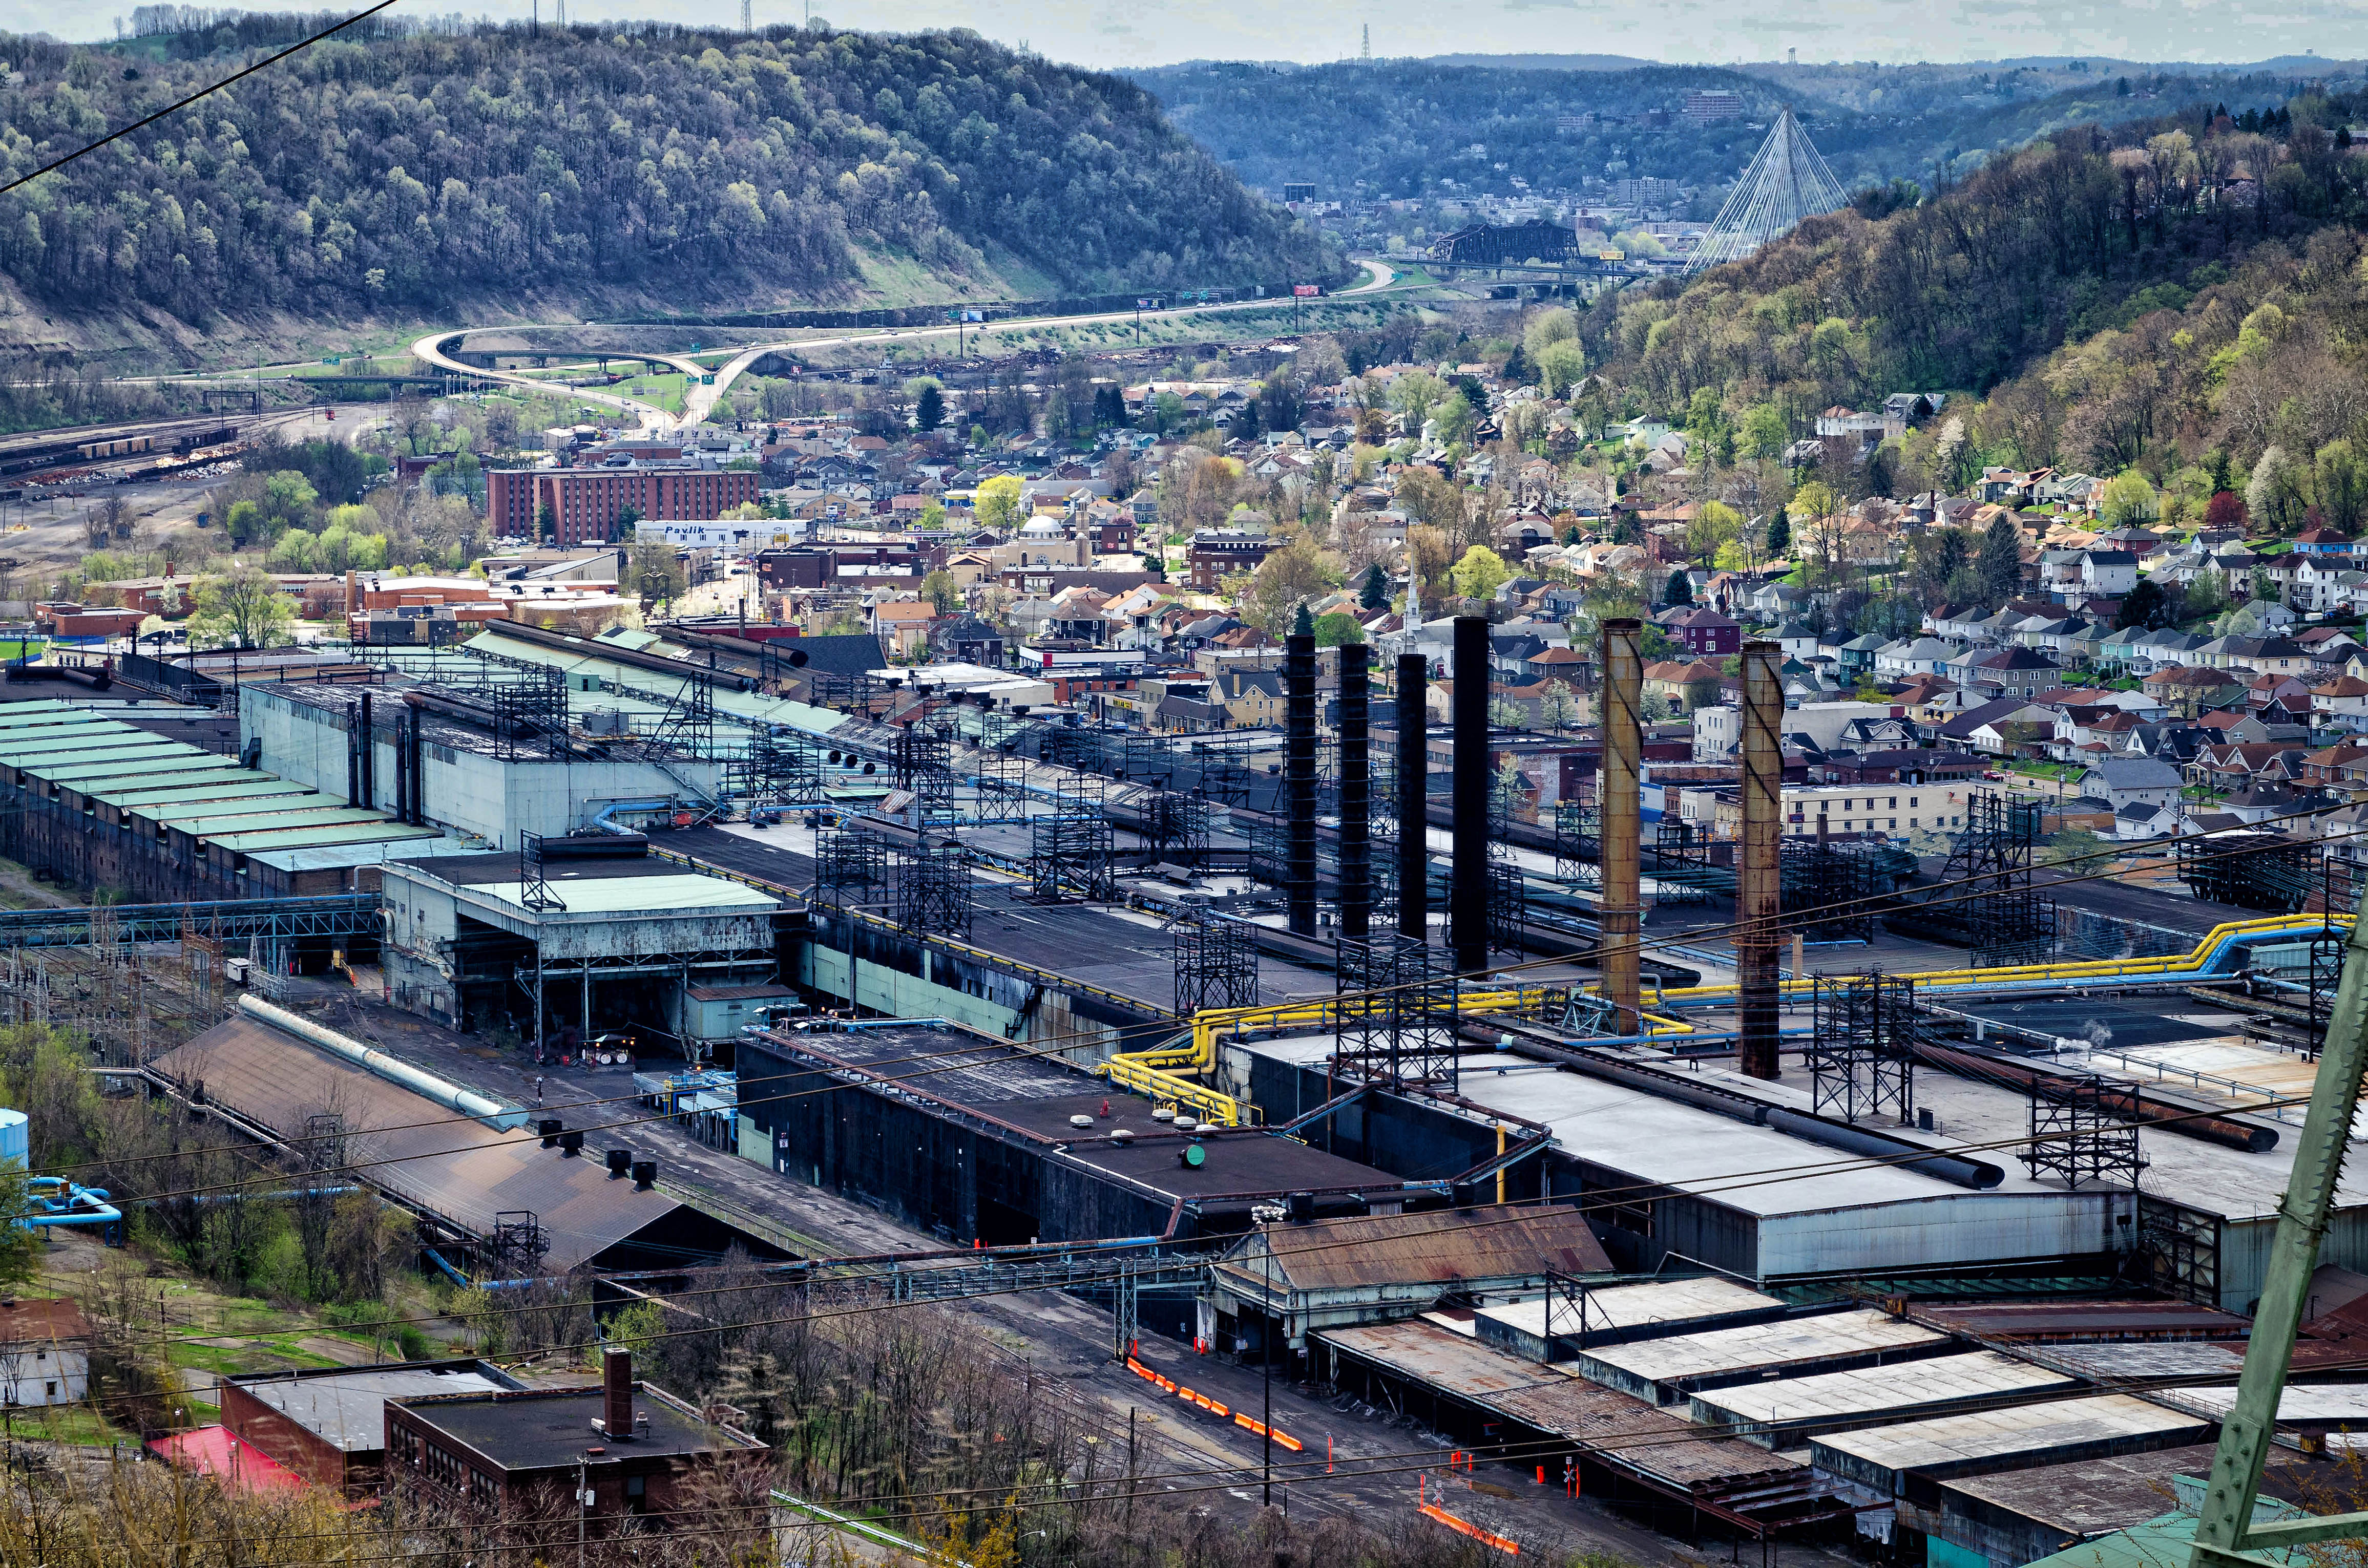 weirton-steel-and-downtown-weirton-wv_6661063919_o